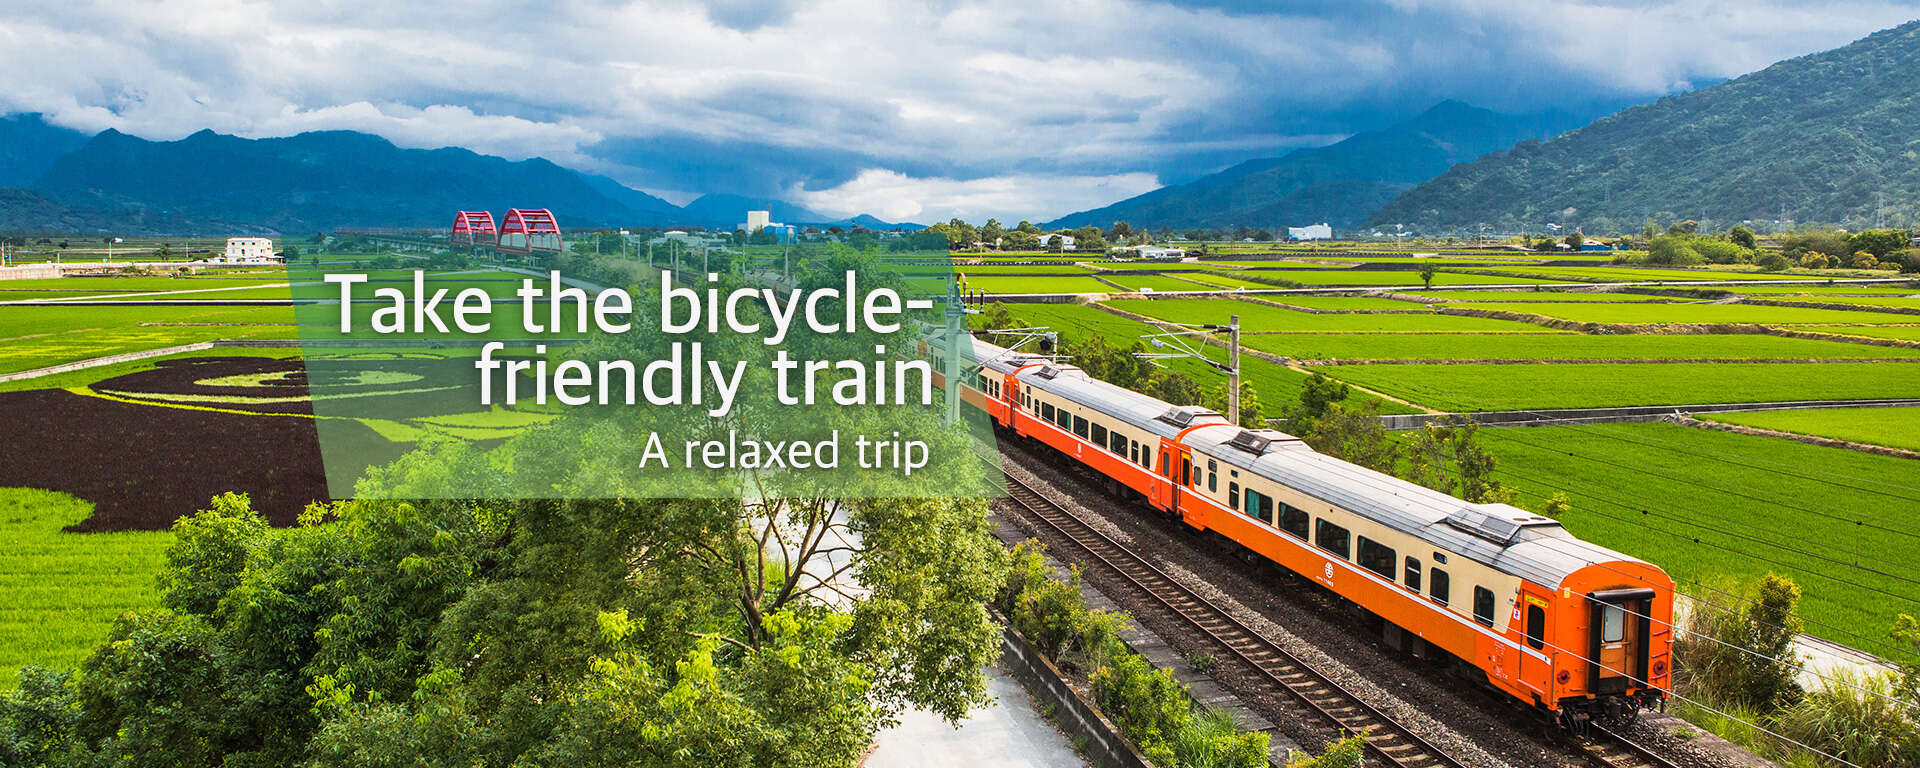 Take the bicycle-friendly train